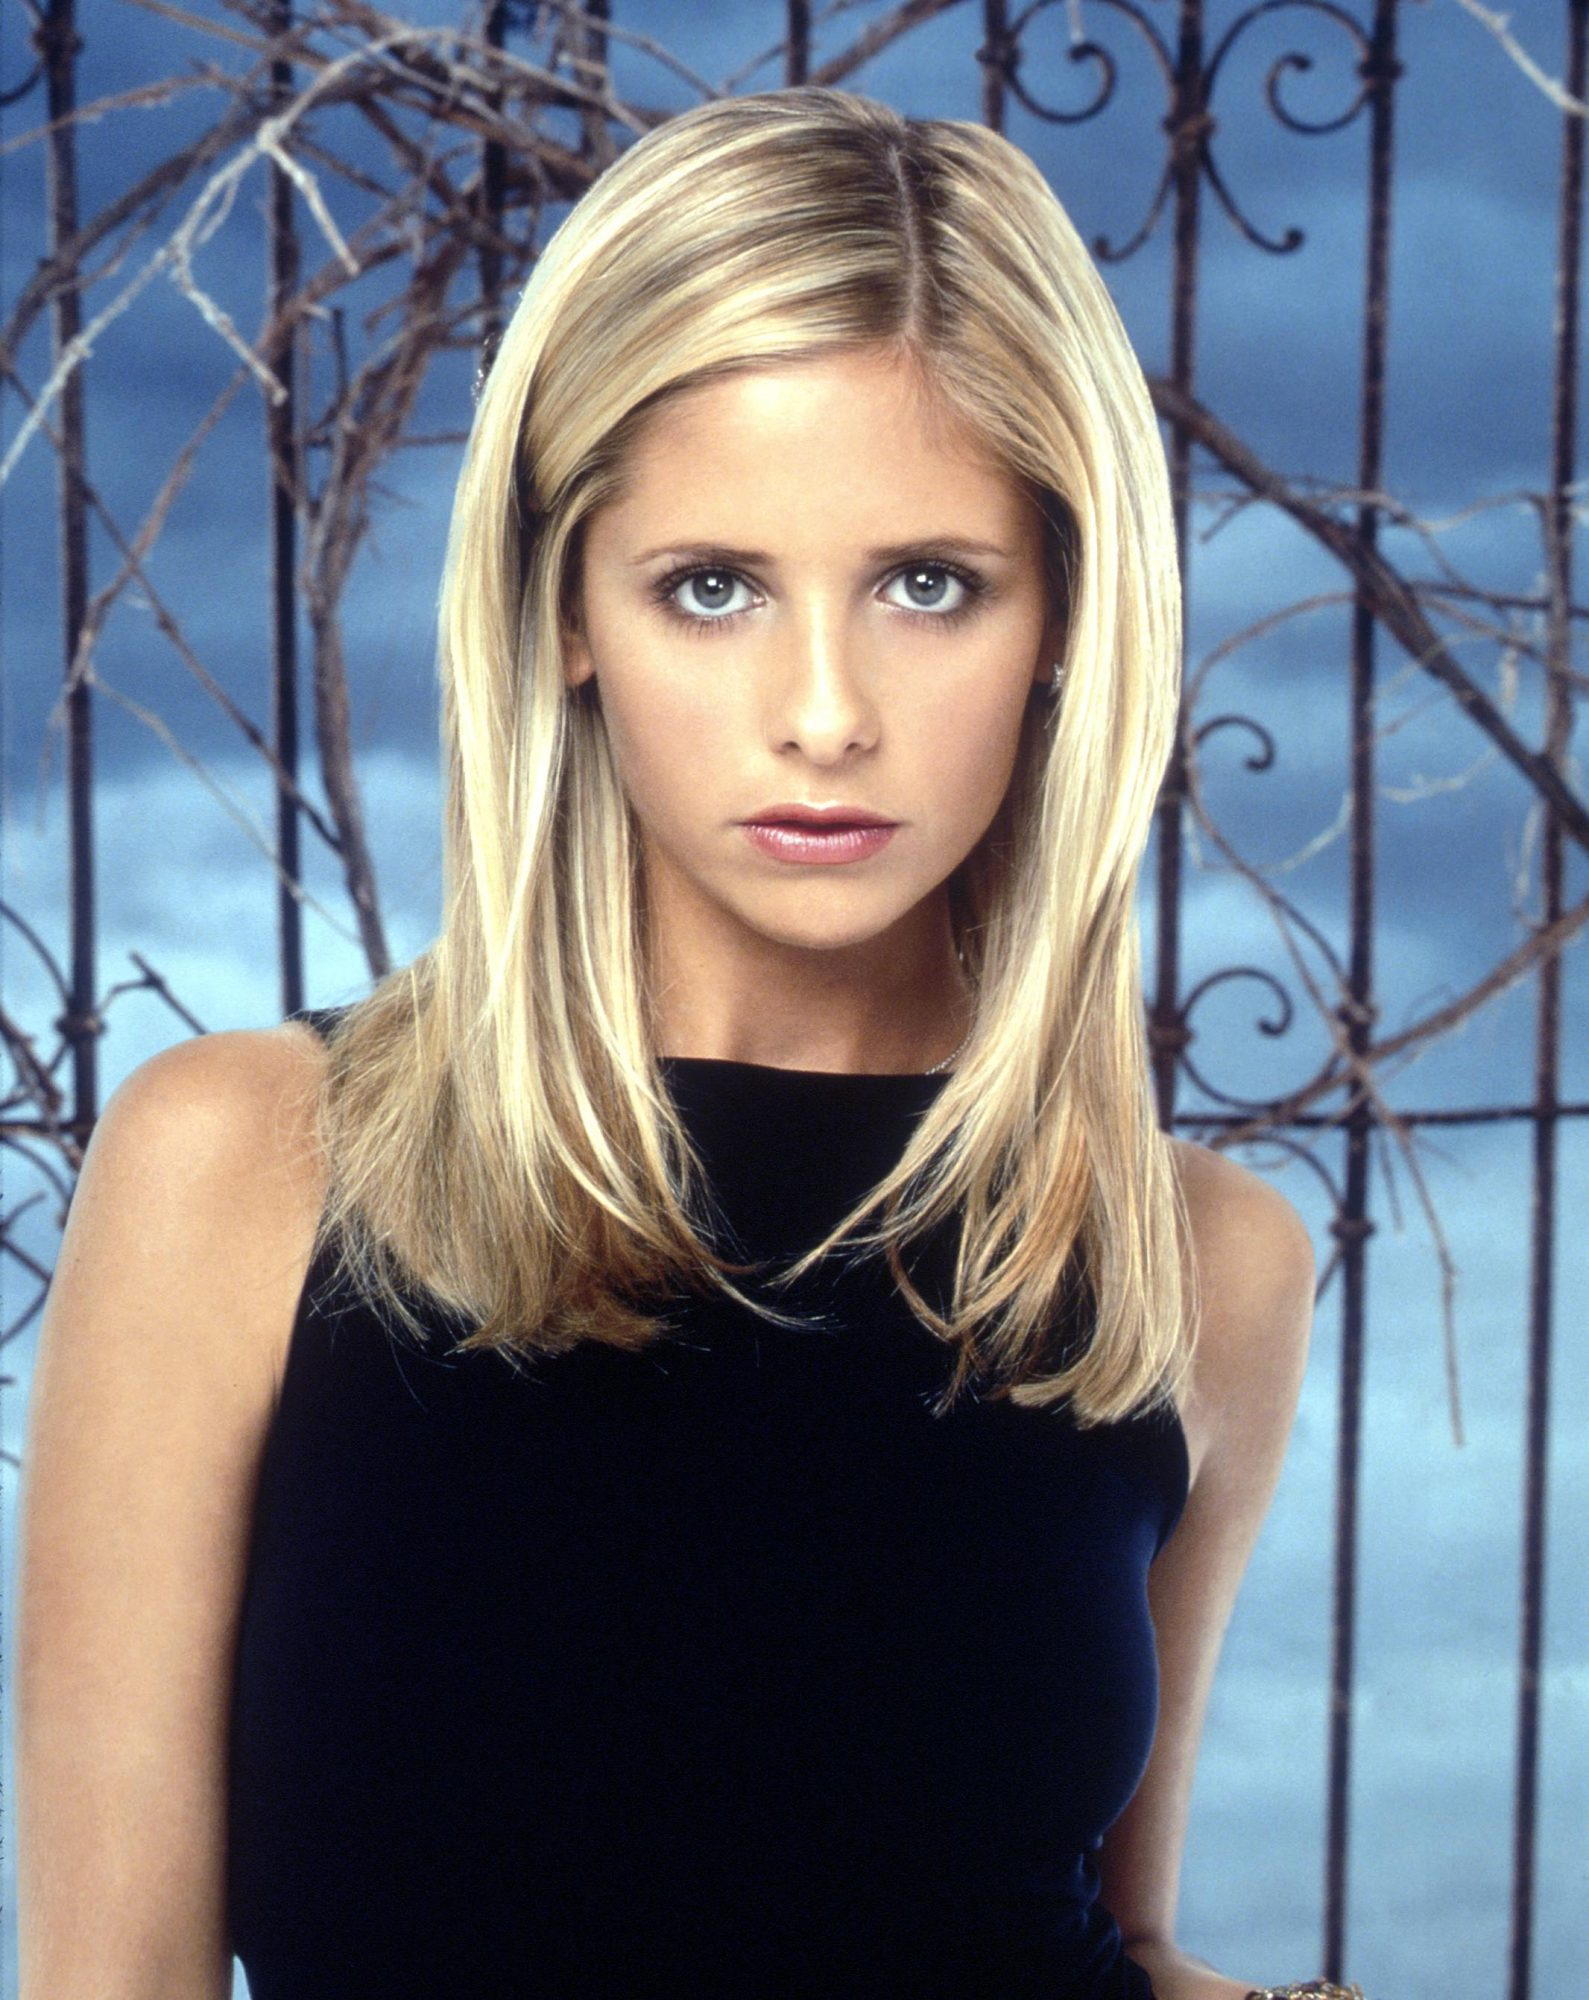 Her Buffy Days Are Over, But Sarah Michelle Gellar Is Still Slaying Her Workouts